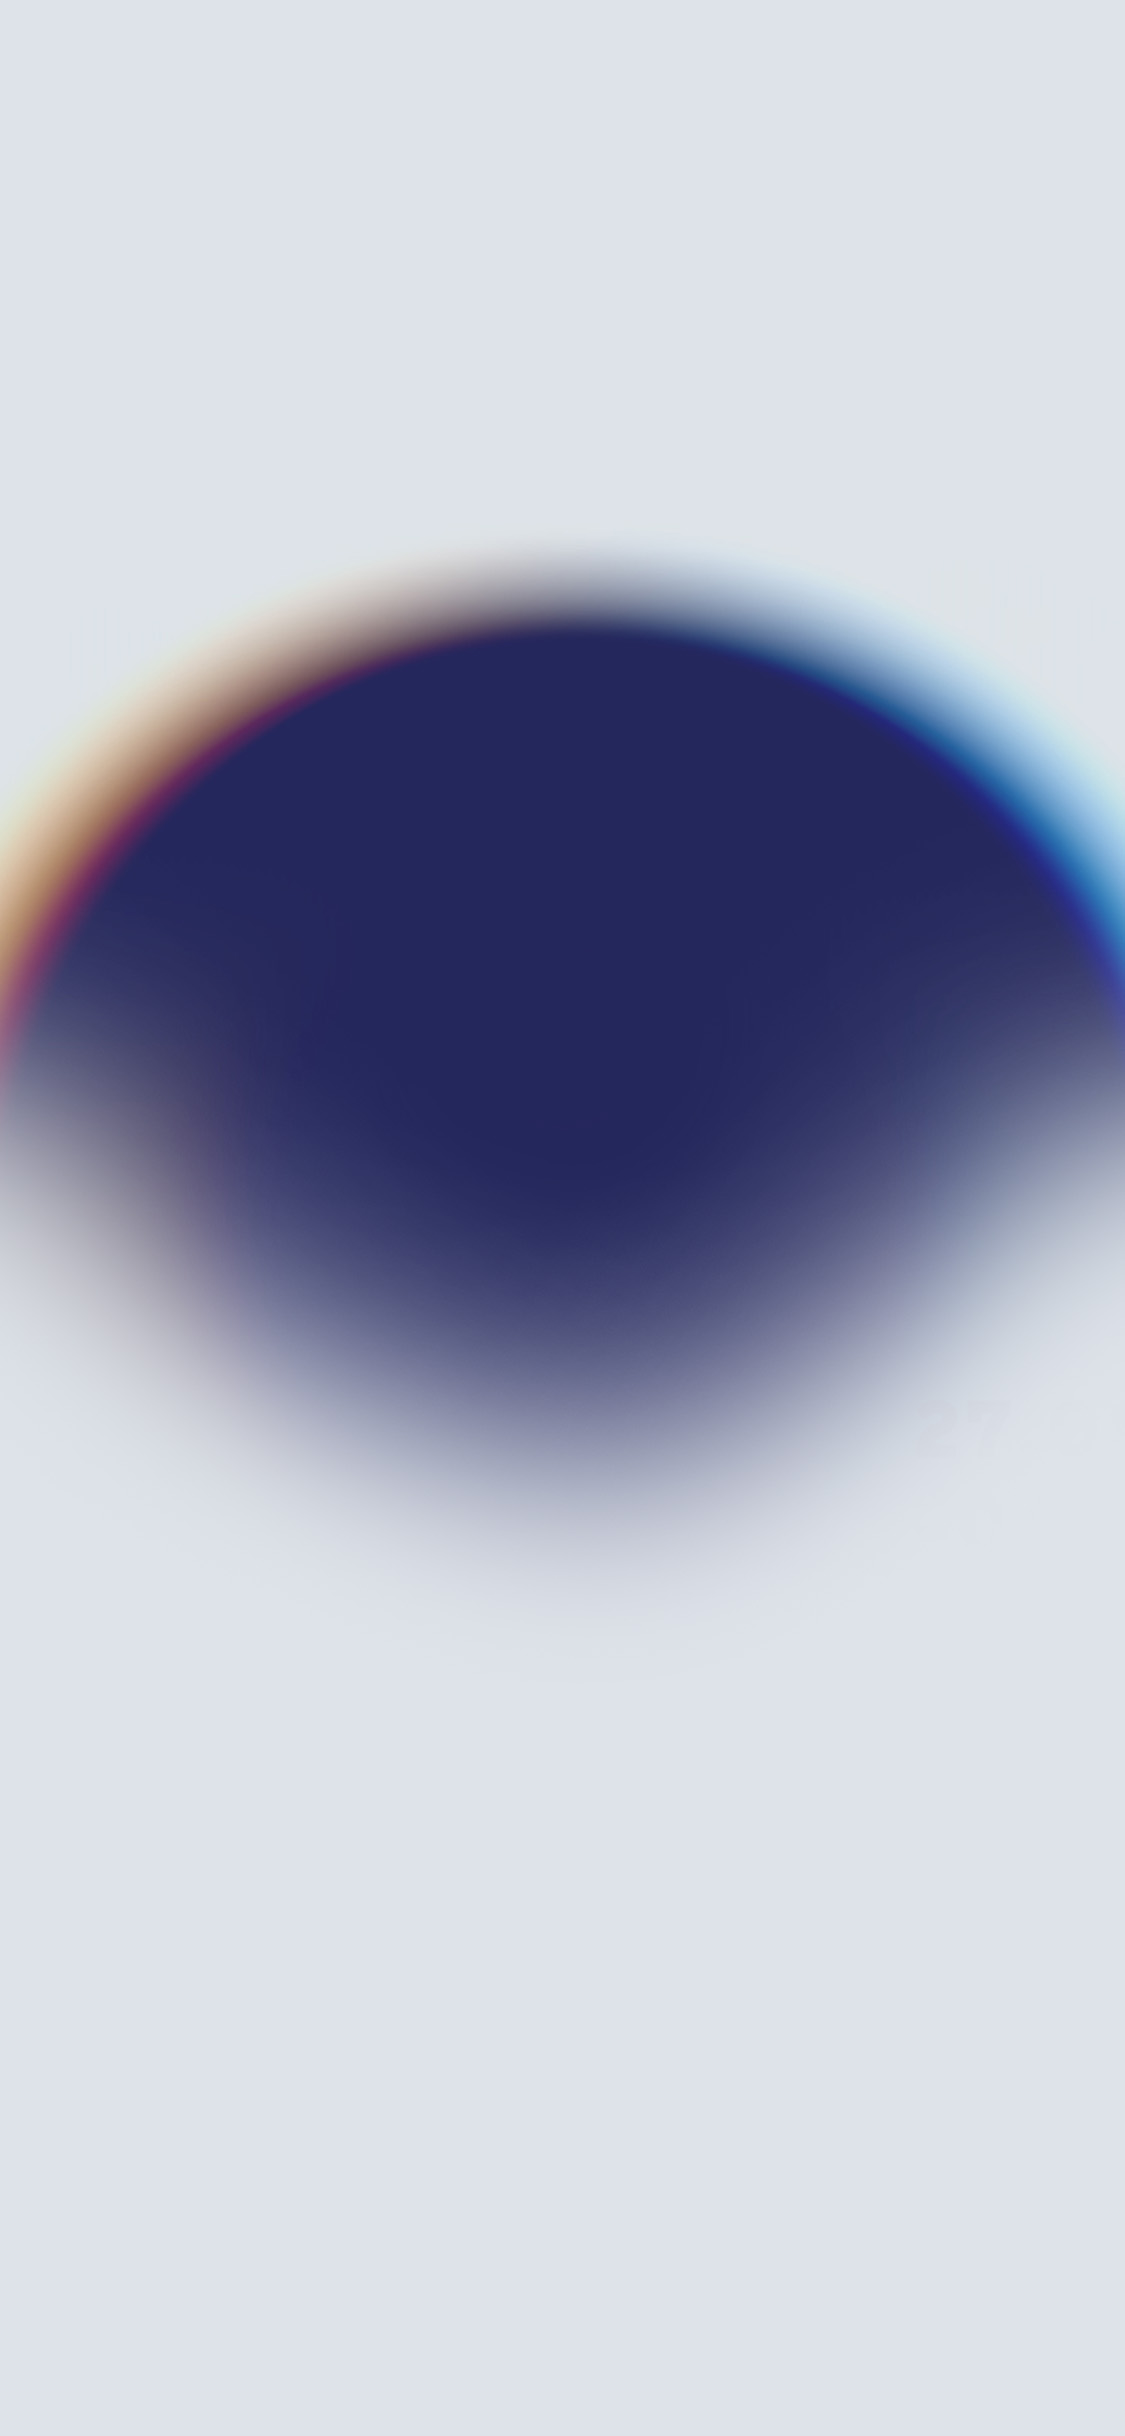 iPhonexpapers.com-Apple-iPhone-wallpaper-be26-minimal-circle-blur-art-illustration